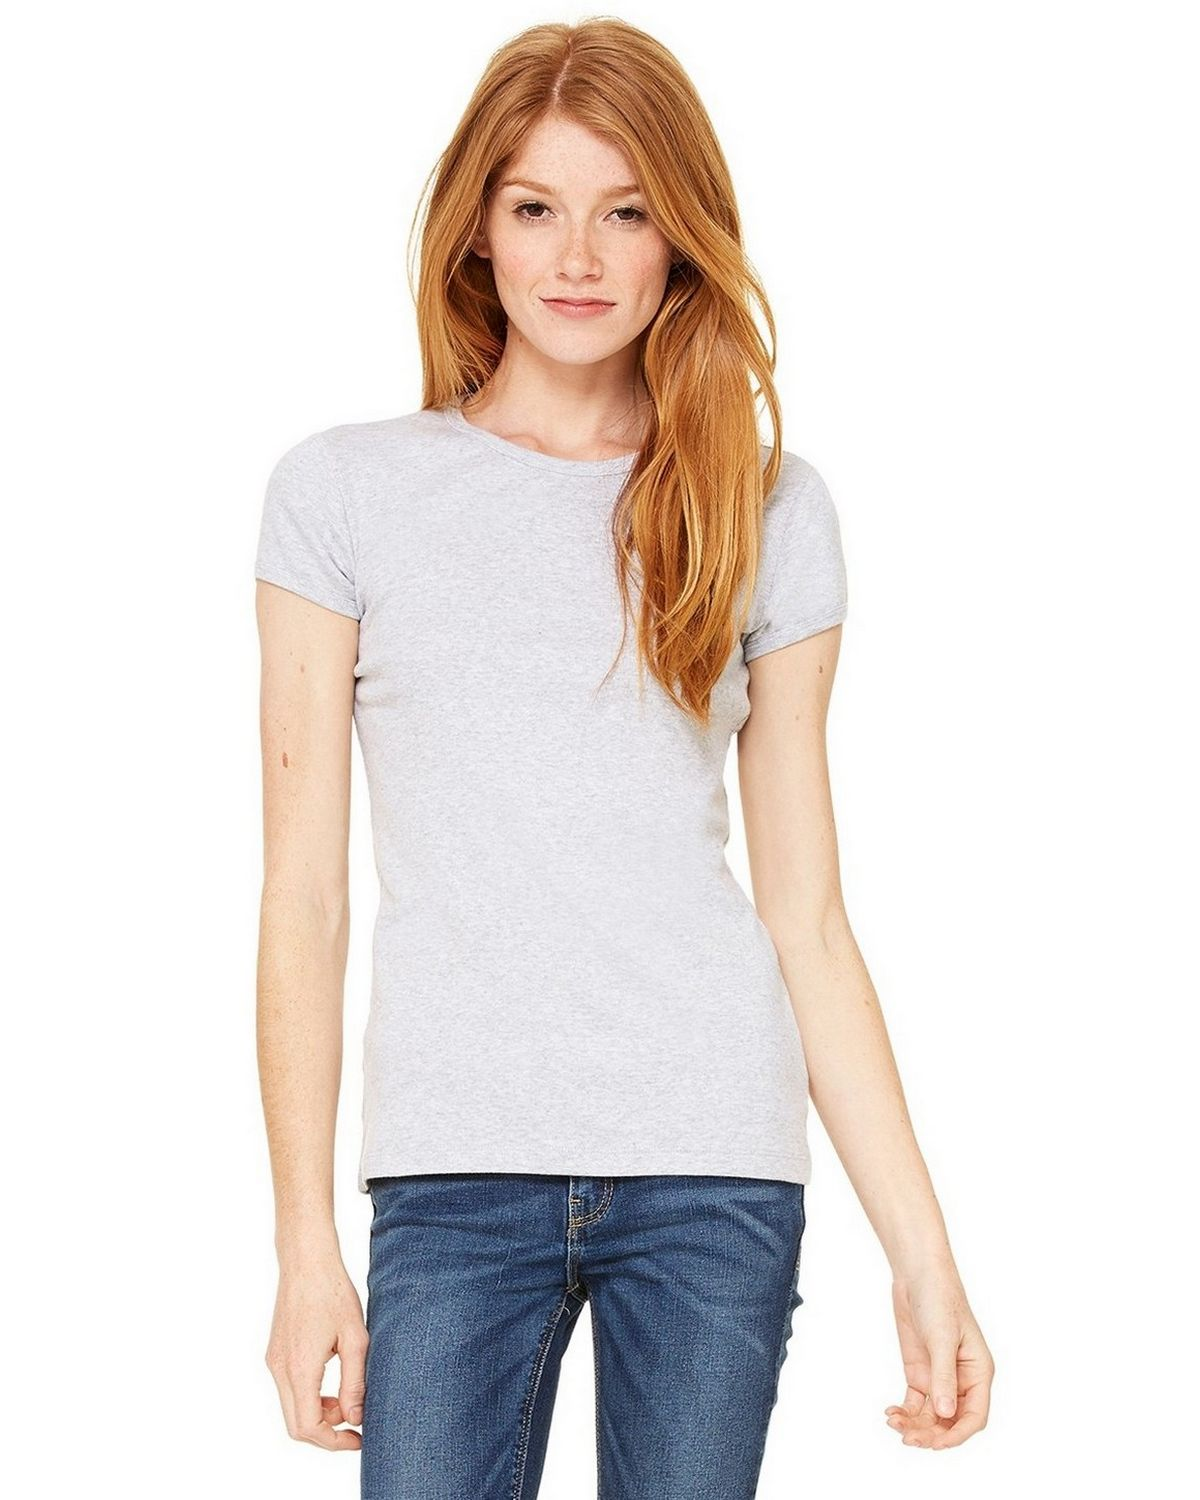 Bella + Canvas 1001 Ladies Stretch Rib Short-Sleeve T-Shirt - Athletic Heather - S 1001